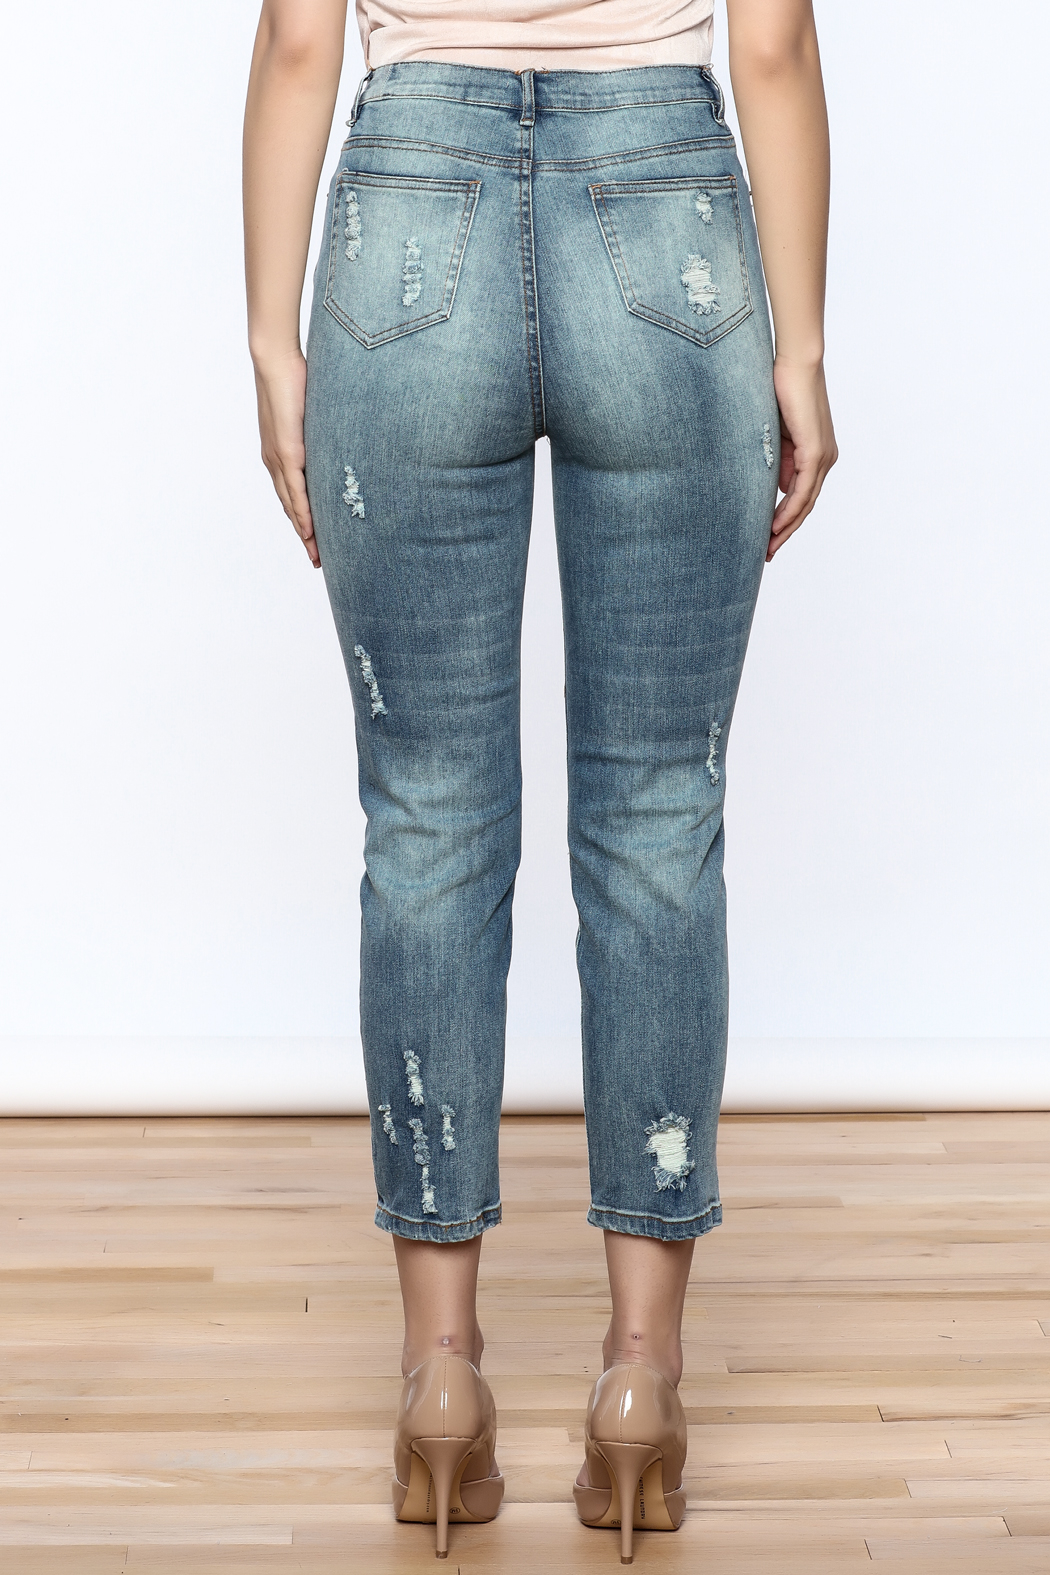 Emory Park Embroidered Denim Jeans - Back Cropped Image